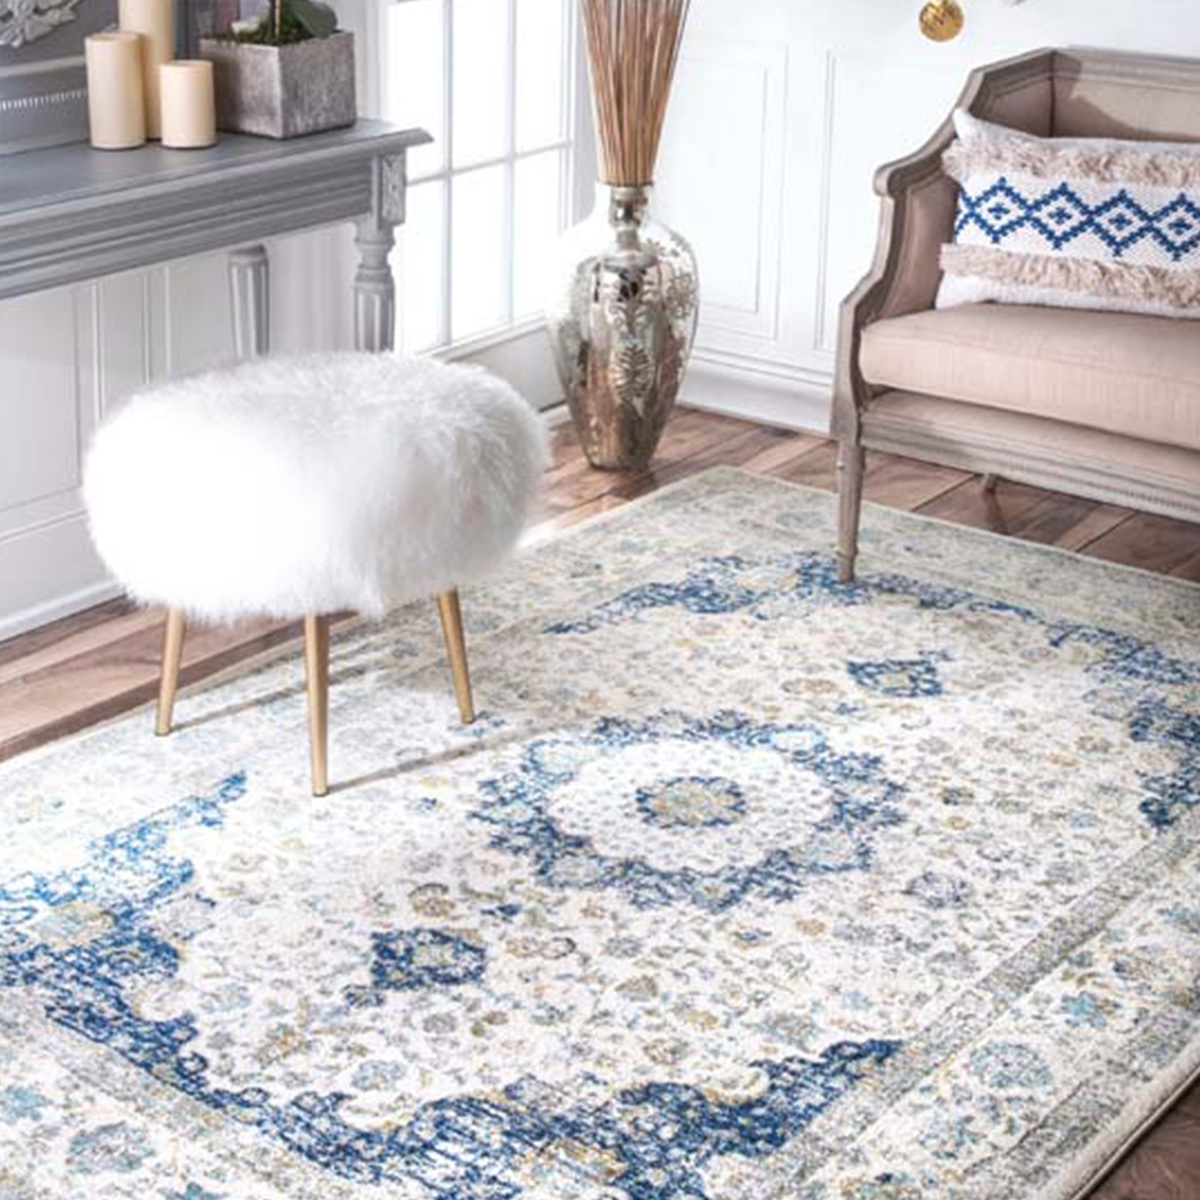 Persian-style rug with a blue, gray, and ivory pattern that is super soft and durable. photo